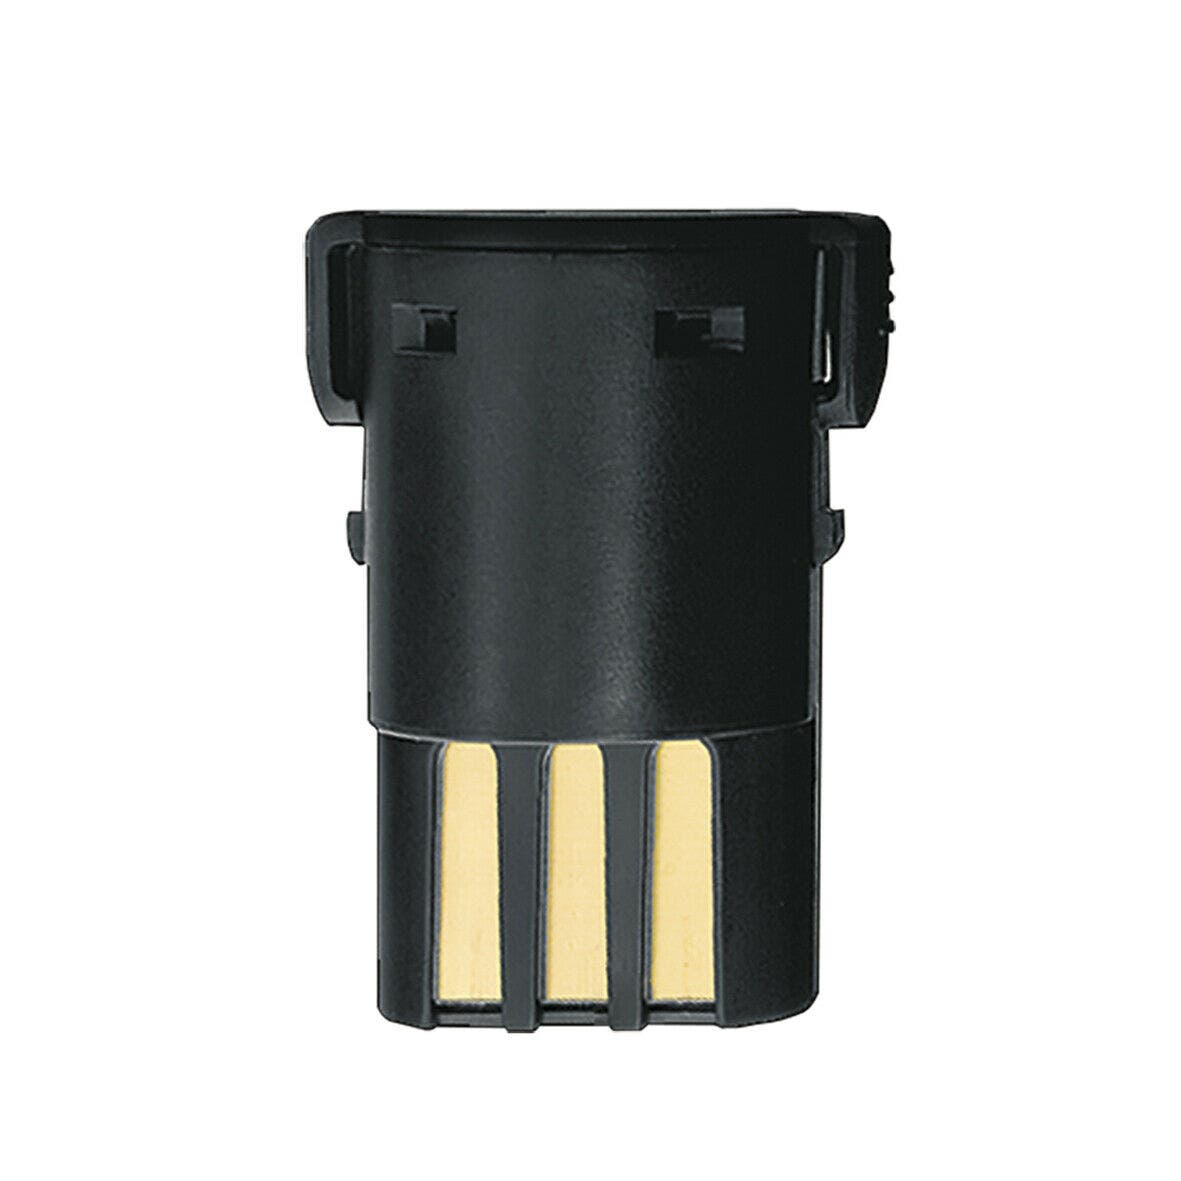 Wahl Moser Replacement (NiMH) Battery for ARCO ARCO SE GENIO Clipper Batteries